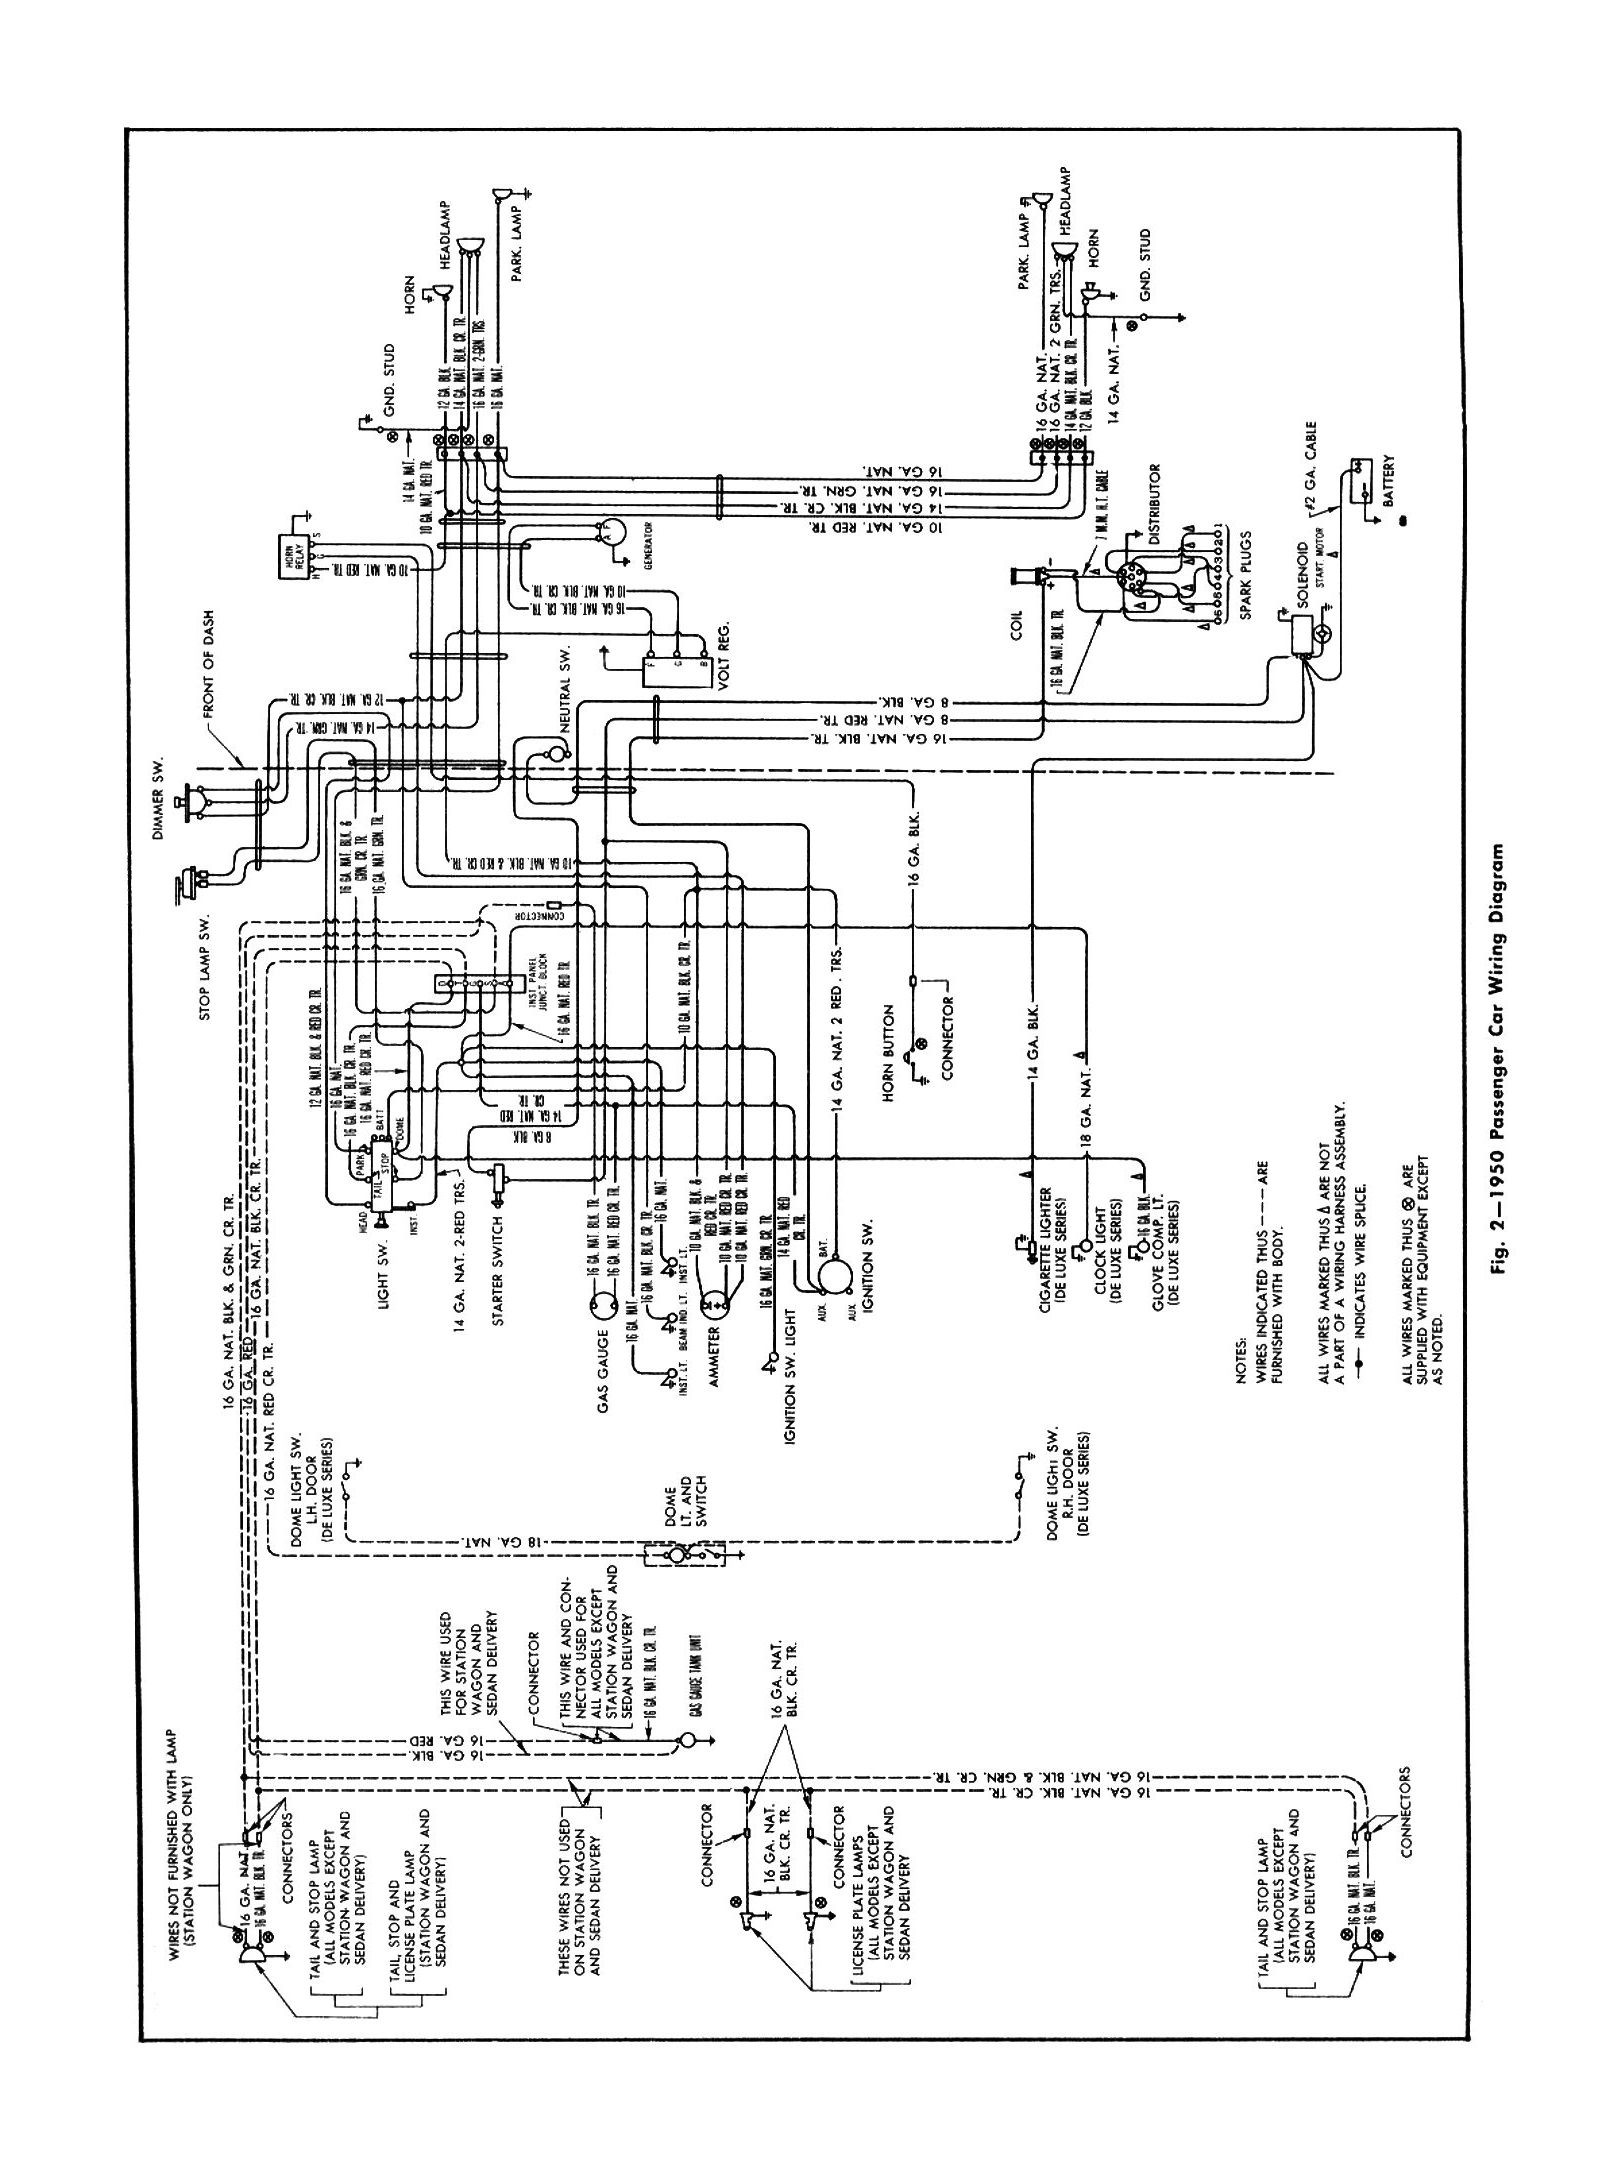 50car chevy wiring diagrams GMC Truck Wiring Diagrams at gsmx.co